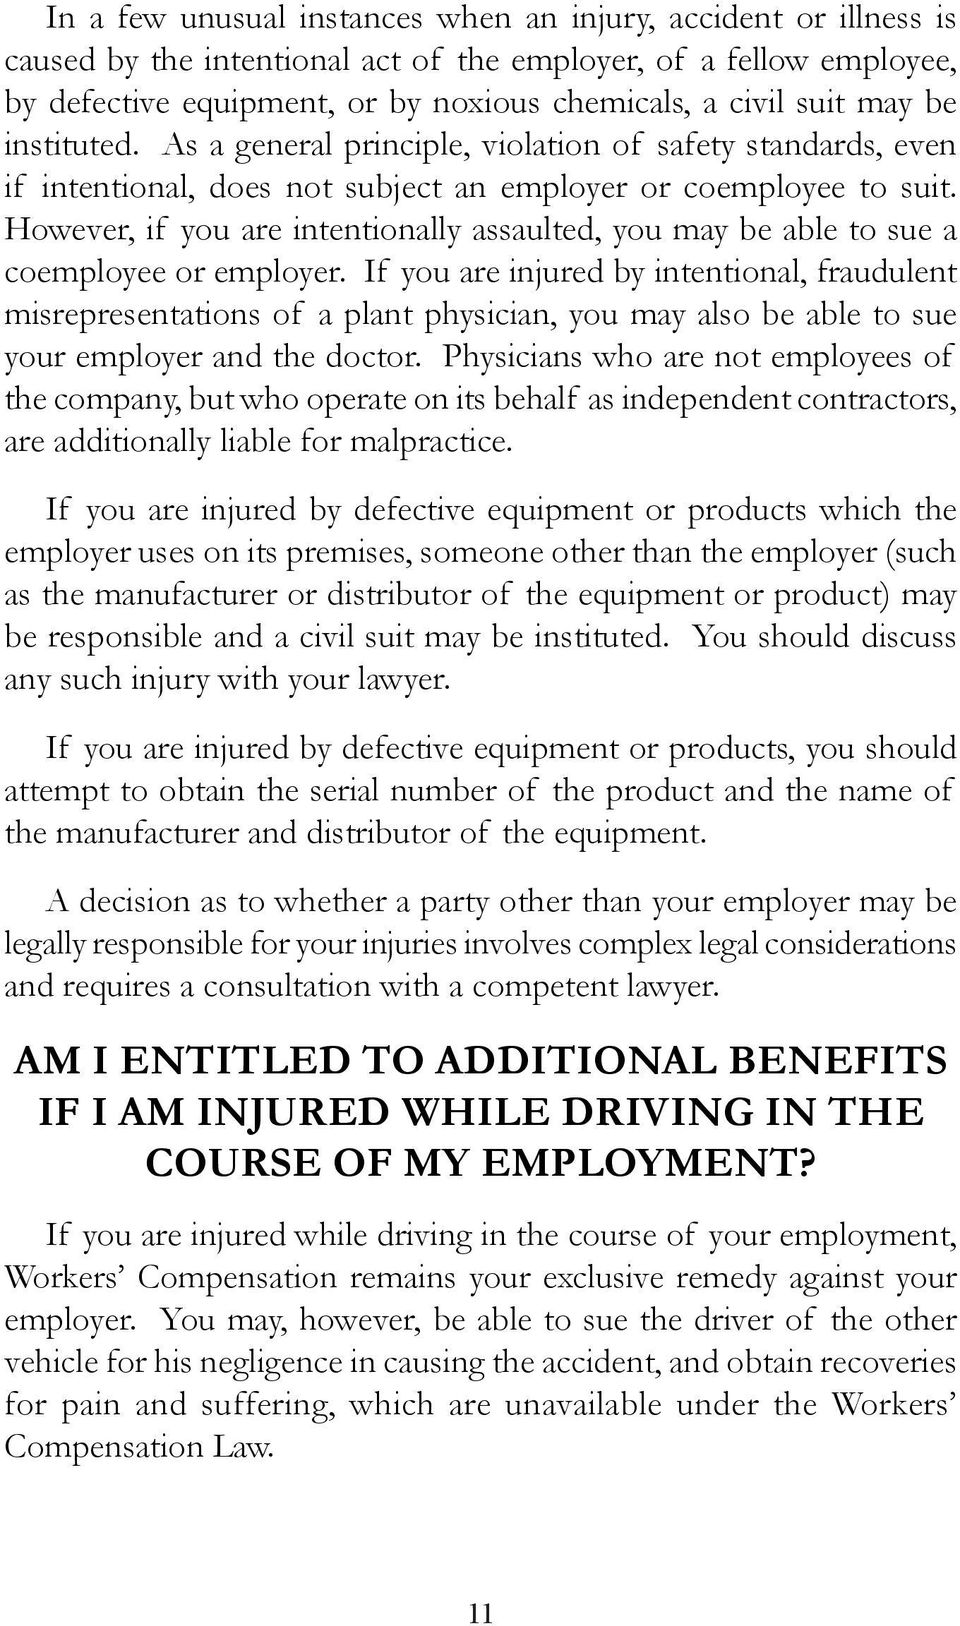 However, if you are intentionally assaulted, you may be able to sue a coemployee or employer.